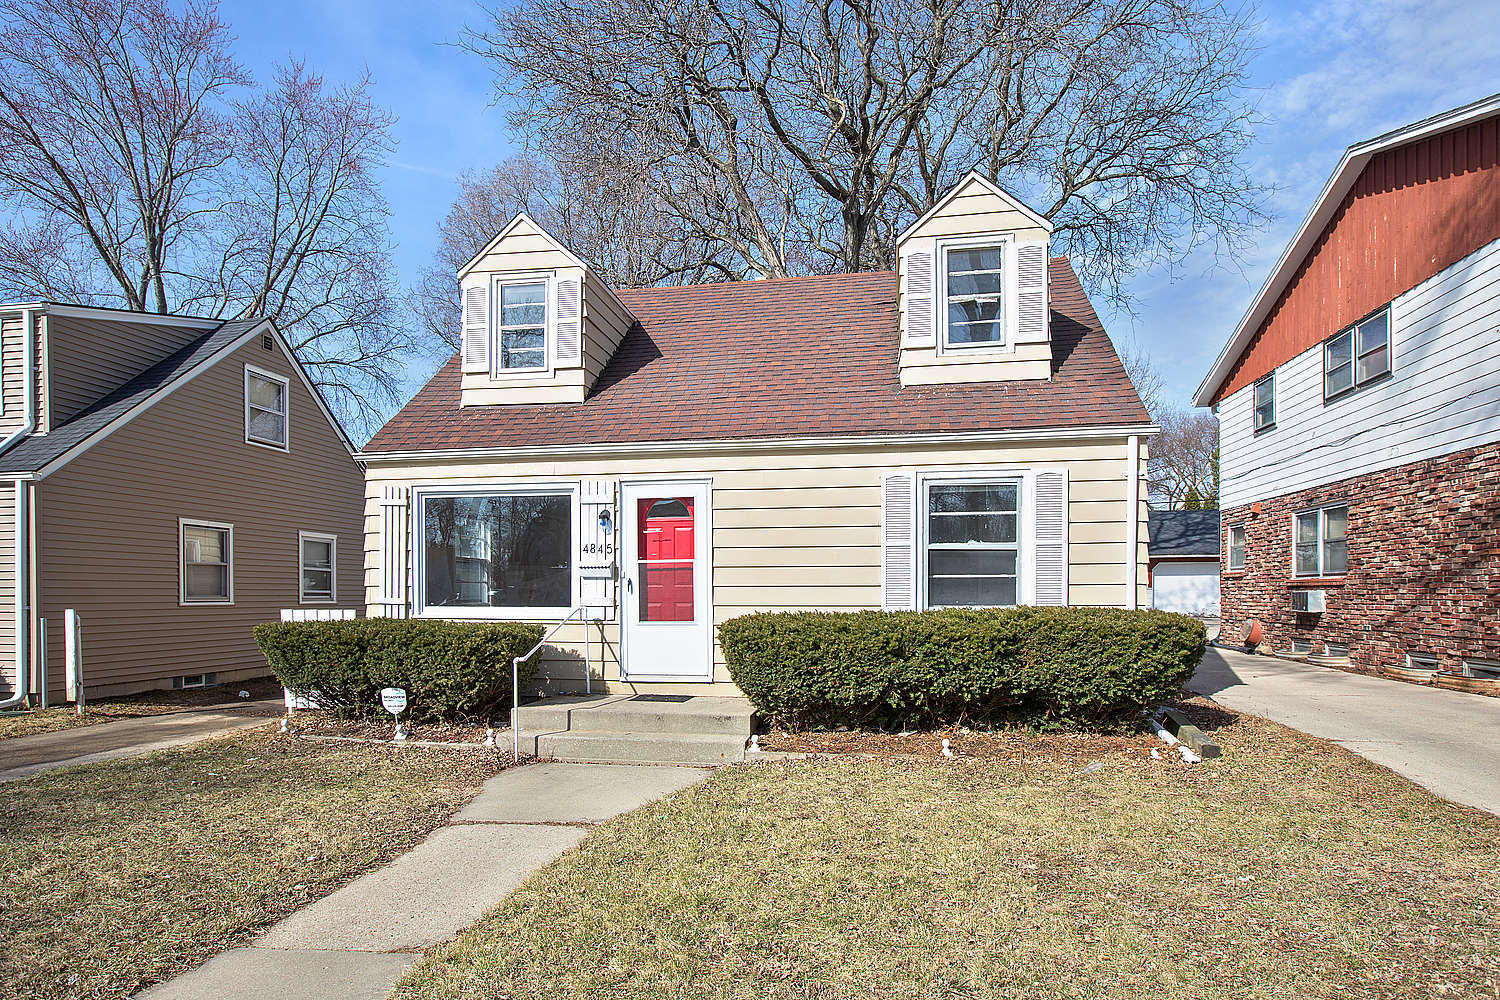 4845 54th St, Milwaukee, Wisconsin 53218, 4 Bedrooms Bedrooms, 6 Rooms Rooms,1 BathroomBathrooms,Single-Family,For Sale,54th St,1631968